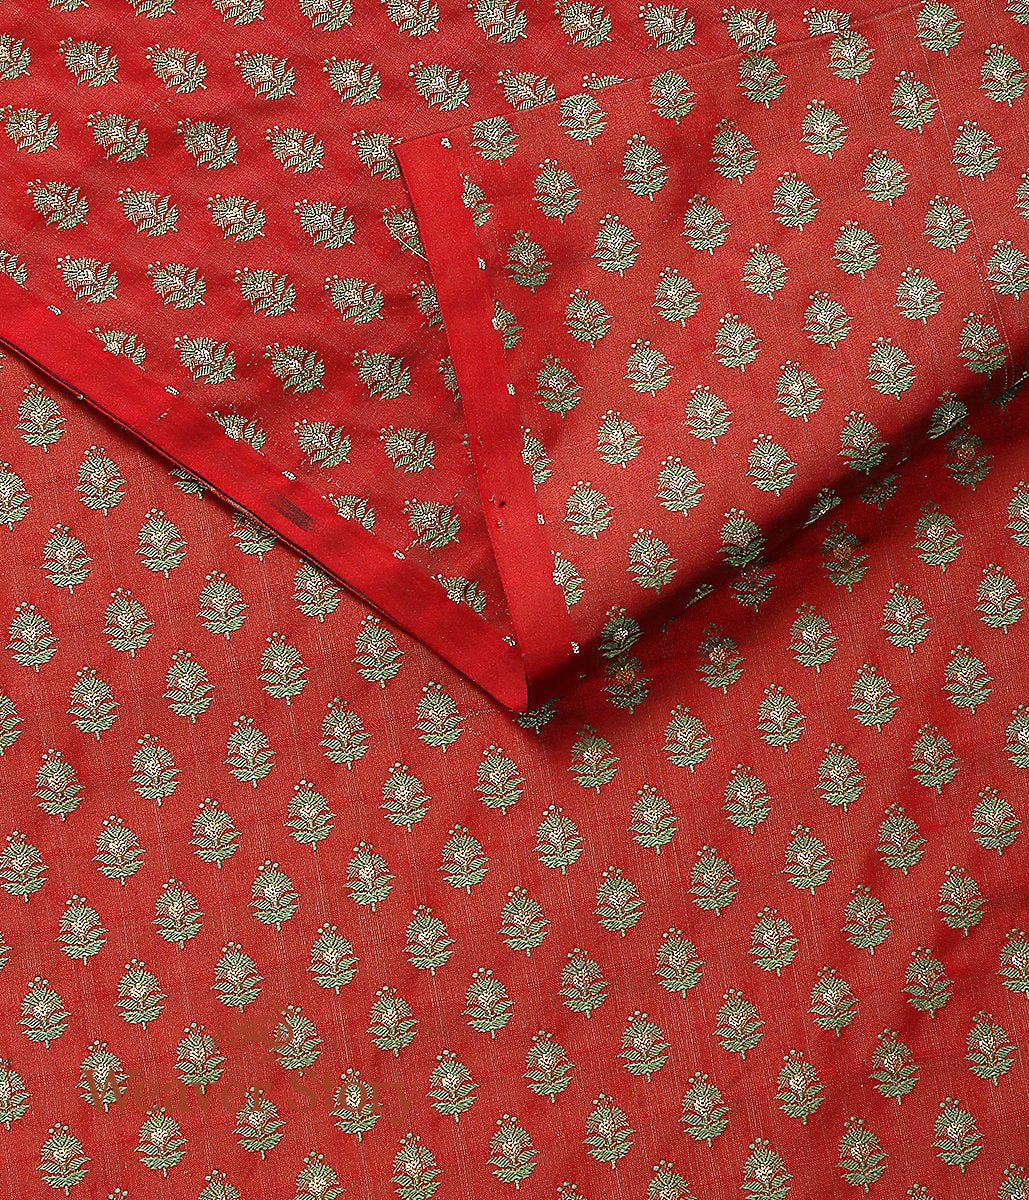 Handwoven Red Green Zari Booti Tanchoi Fabric